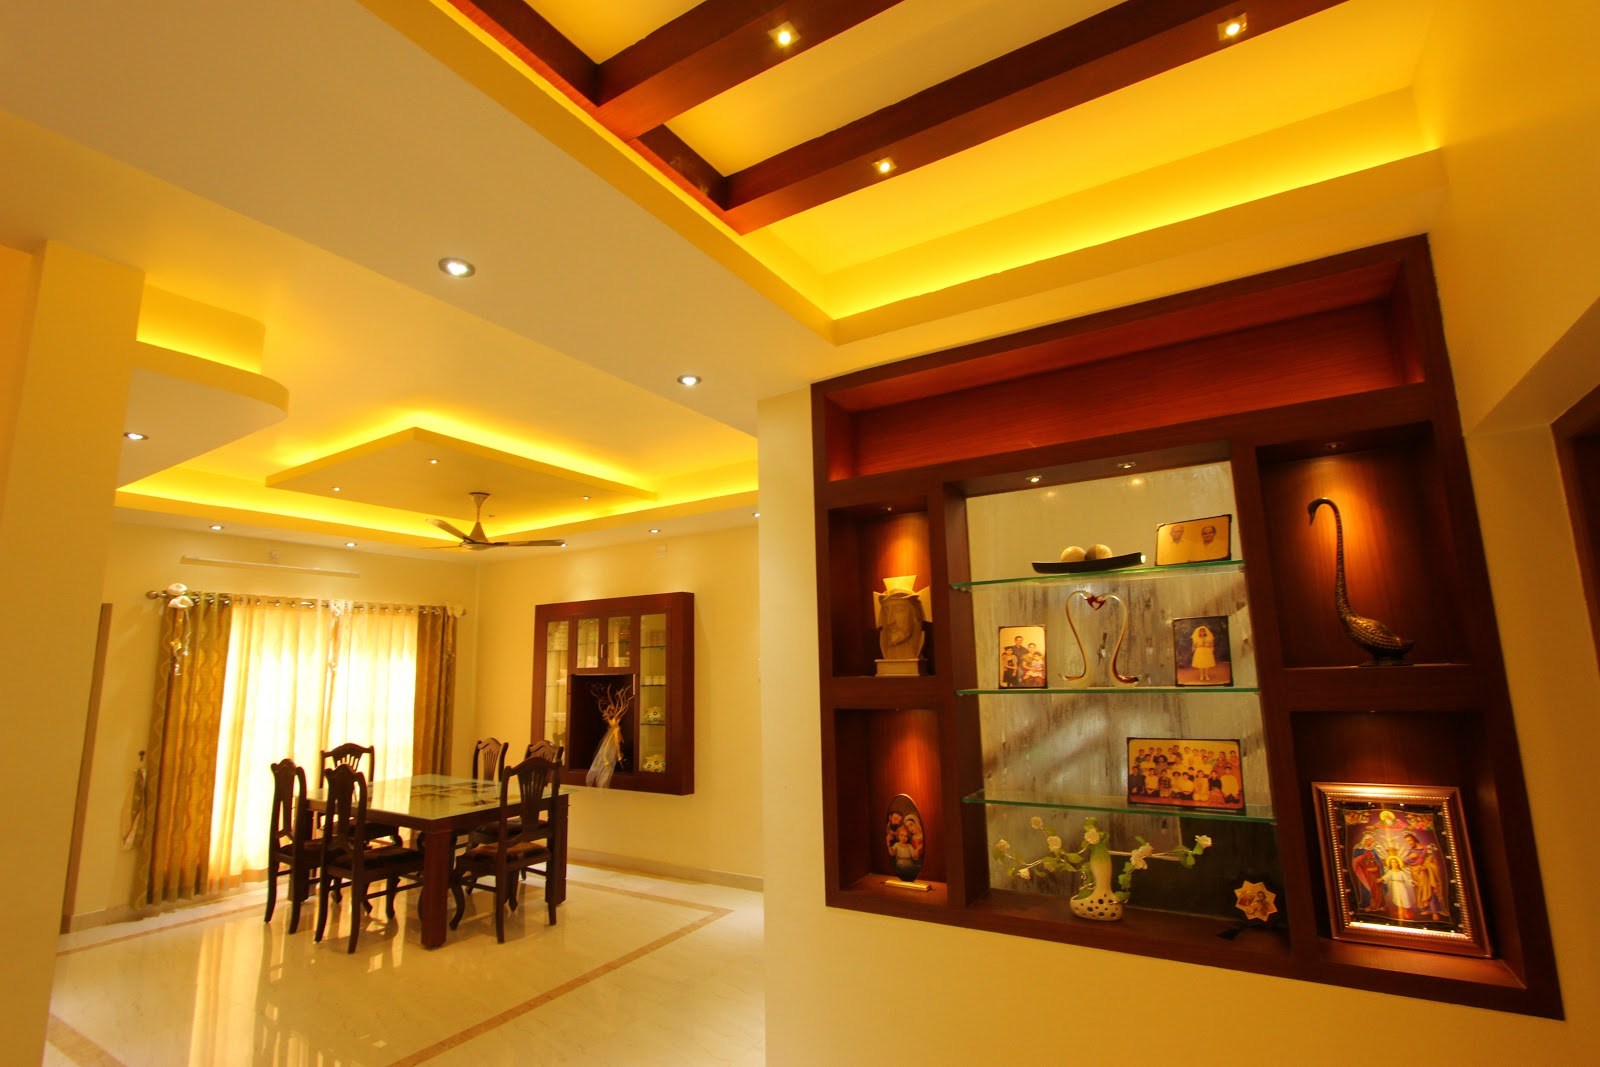 Shilpakala interiors award winning home interior design for Interior design photos